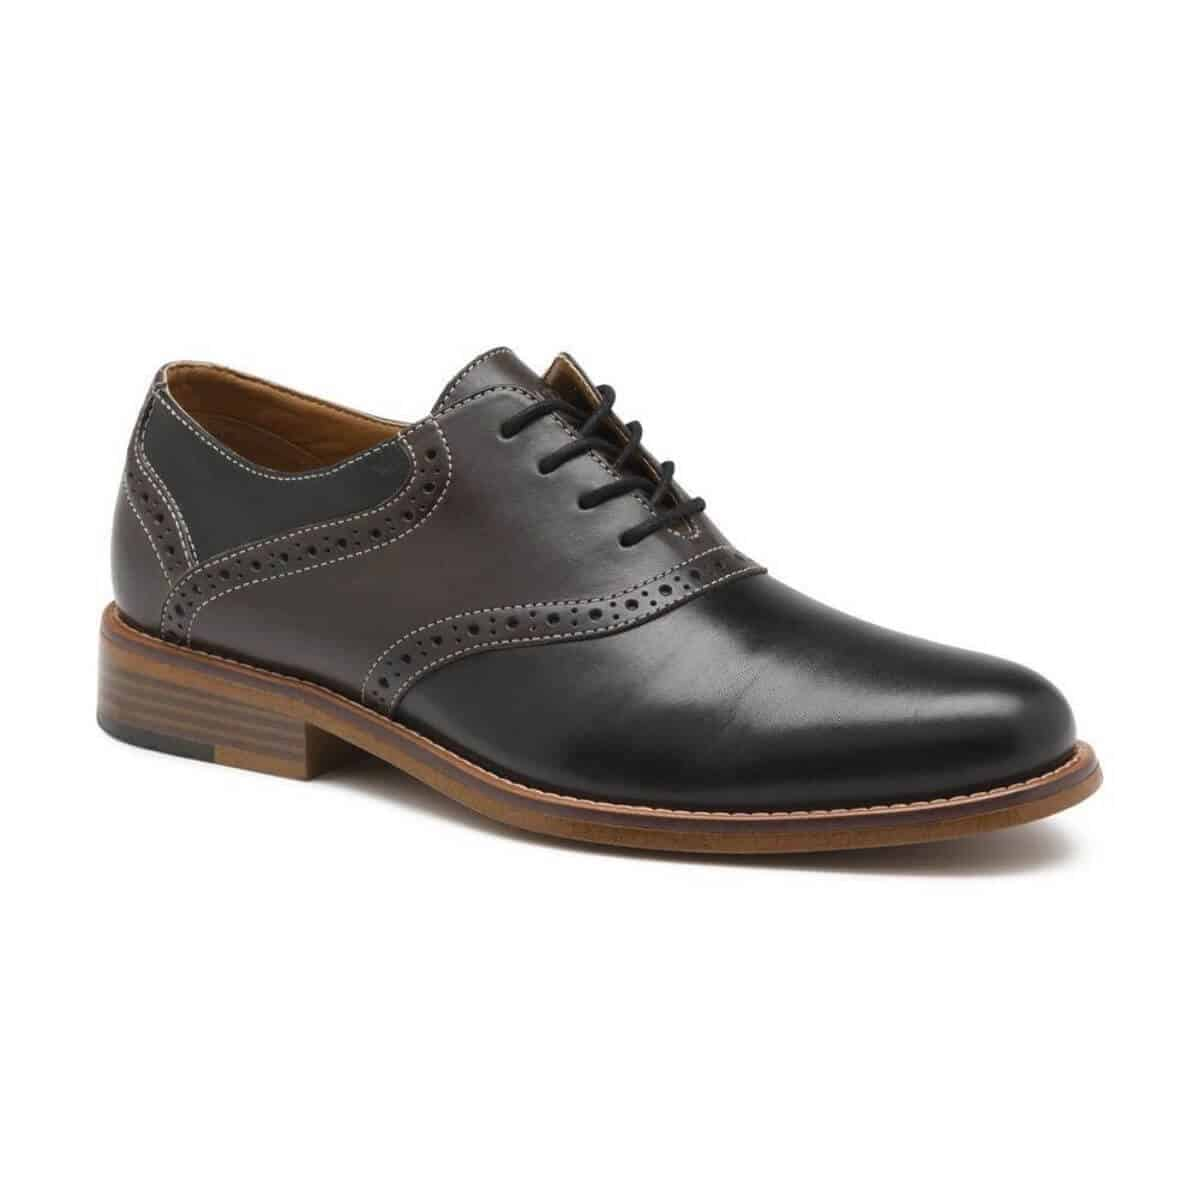 Black leather saddle Oxford shoe.